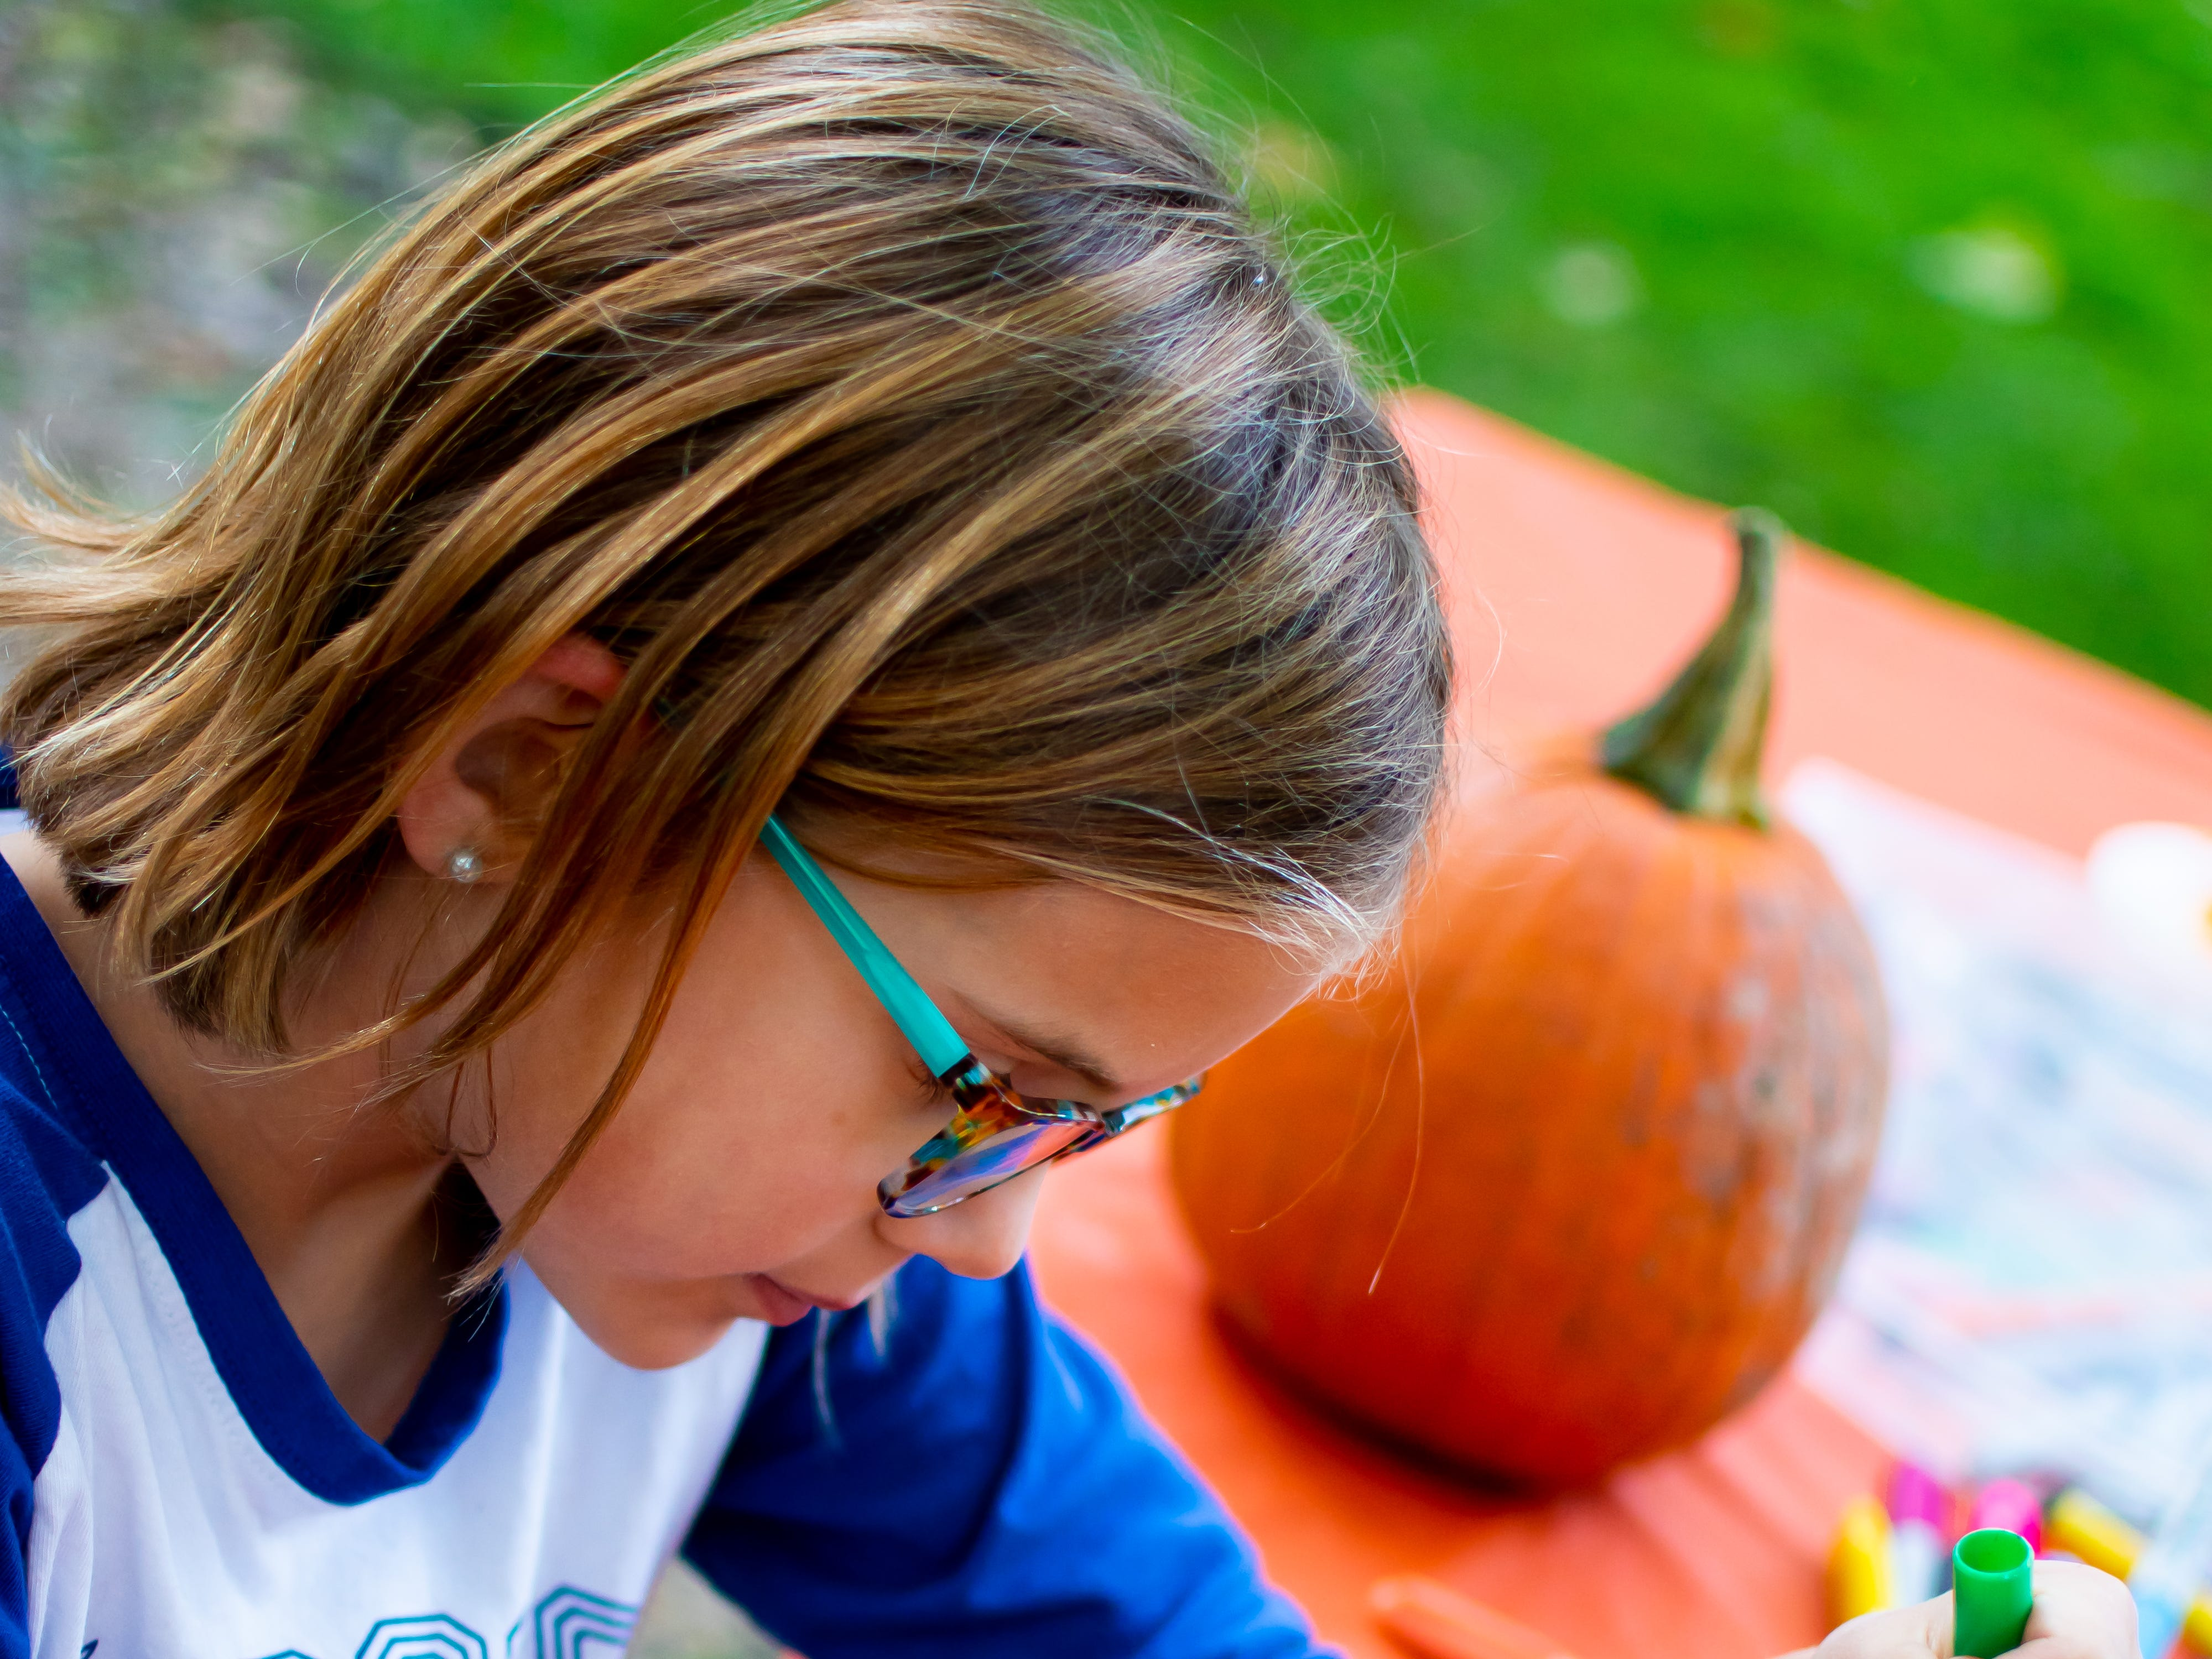 Olivia Berger, 7, of Urbandale, decorates a pumpkin on Tuesday, October 16, 2018 for the Waukee Area Chamber of Commerce fall after hours party at Timberline Campground in Waukee.